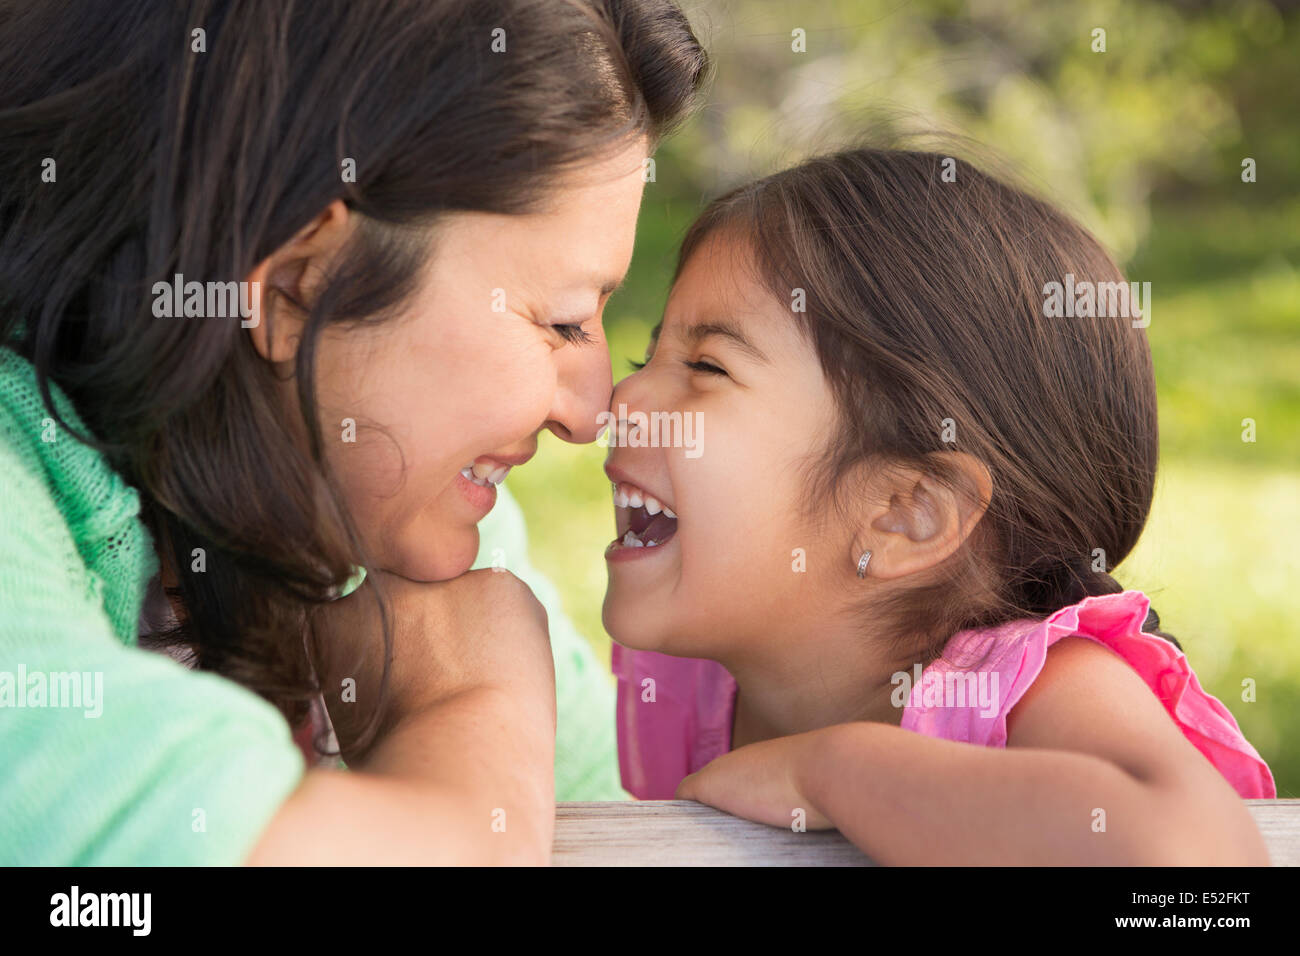 A mother in the park with her daughter, laughing and kissing each other. - Stock Image